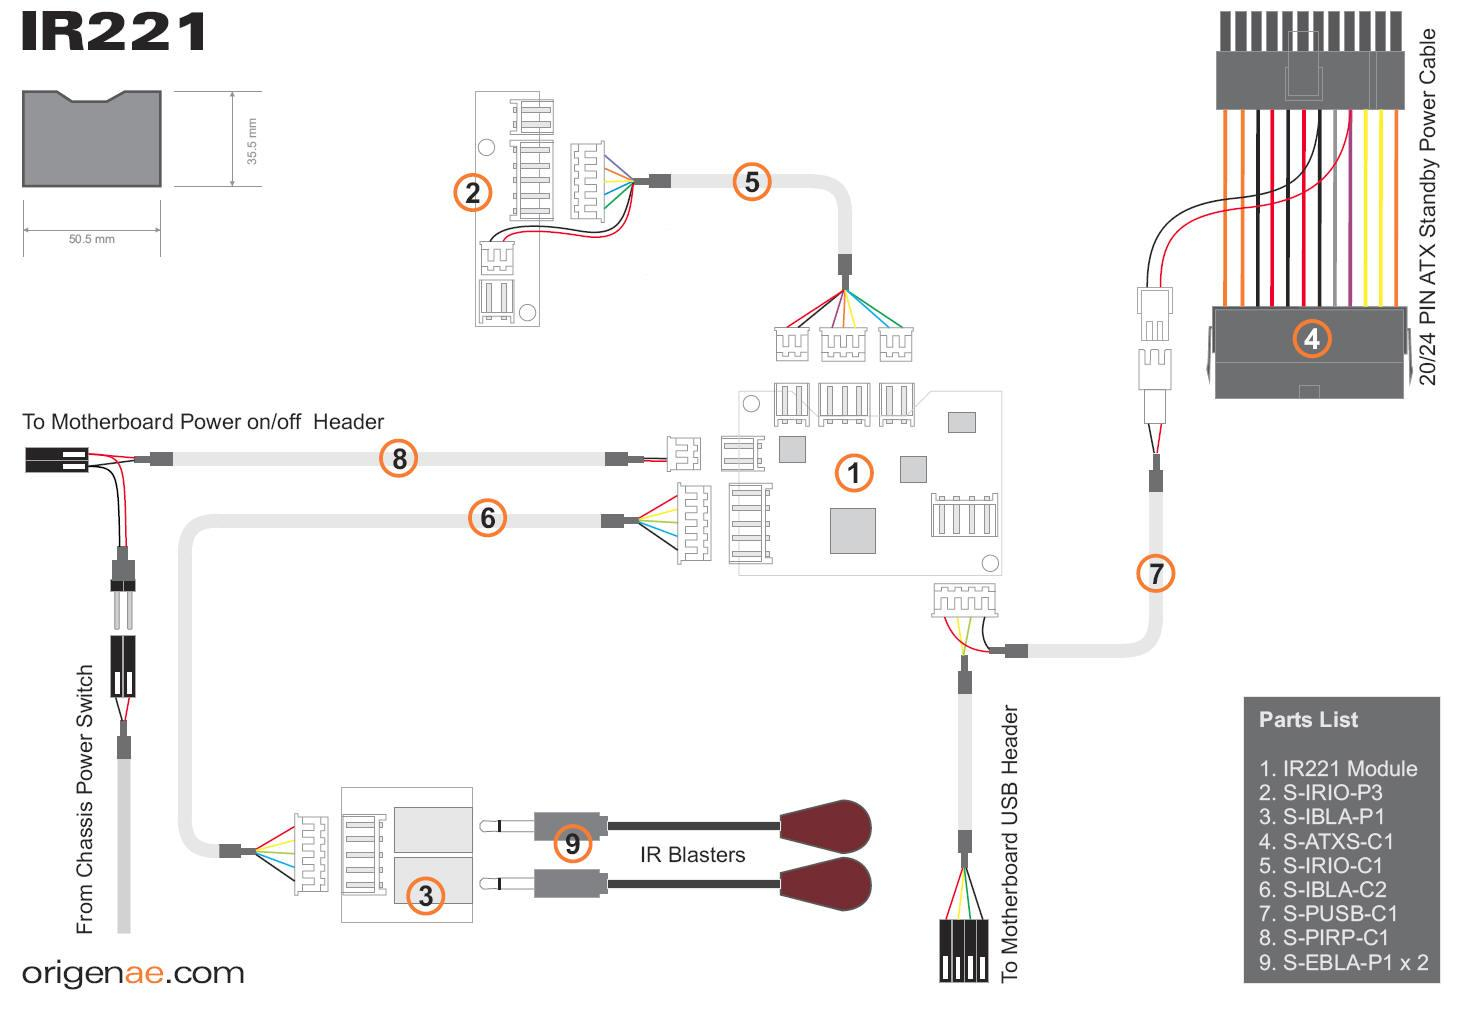 Ide Sata To Usb Cable Wiring Diagram | Manual E-Books - Sata To Usb Wiring Diagram